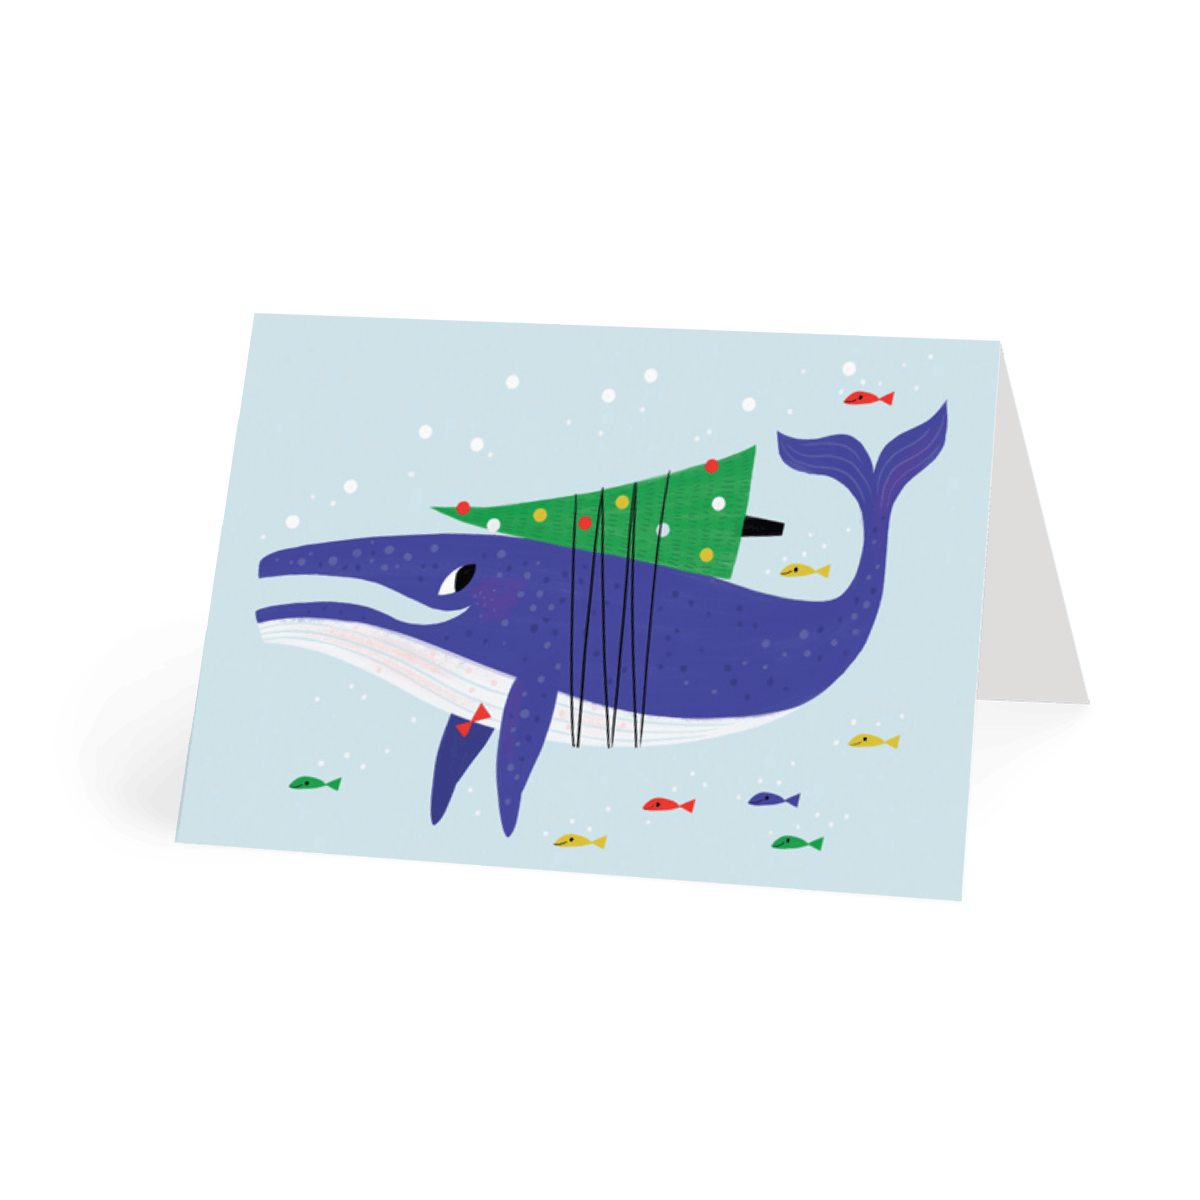 Https%3a%2f%2fwww.papier.com%2fproduct image%2f12552%2f14%2fchristmas whale 3162 front 1477141641.png?ixlib=rb 1.1